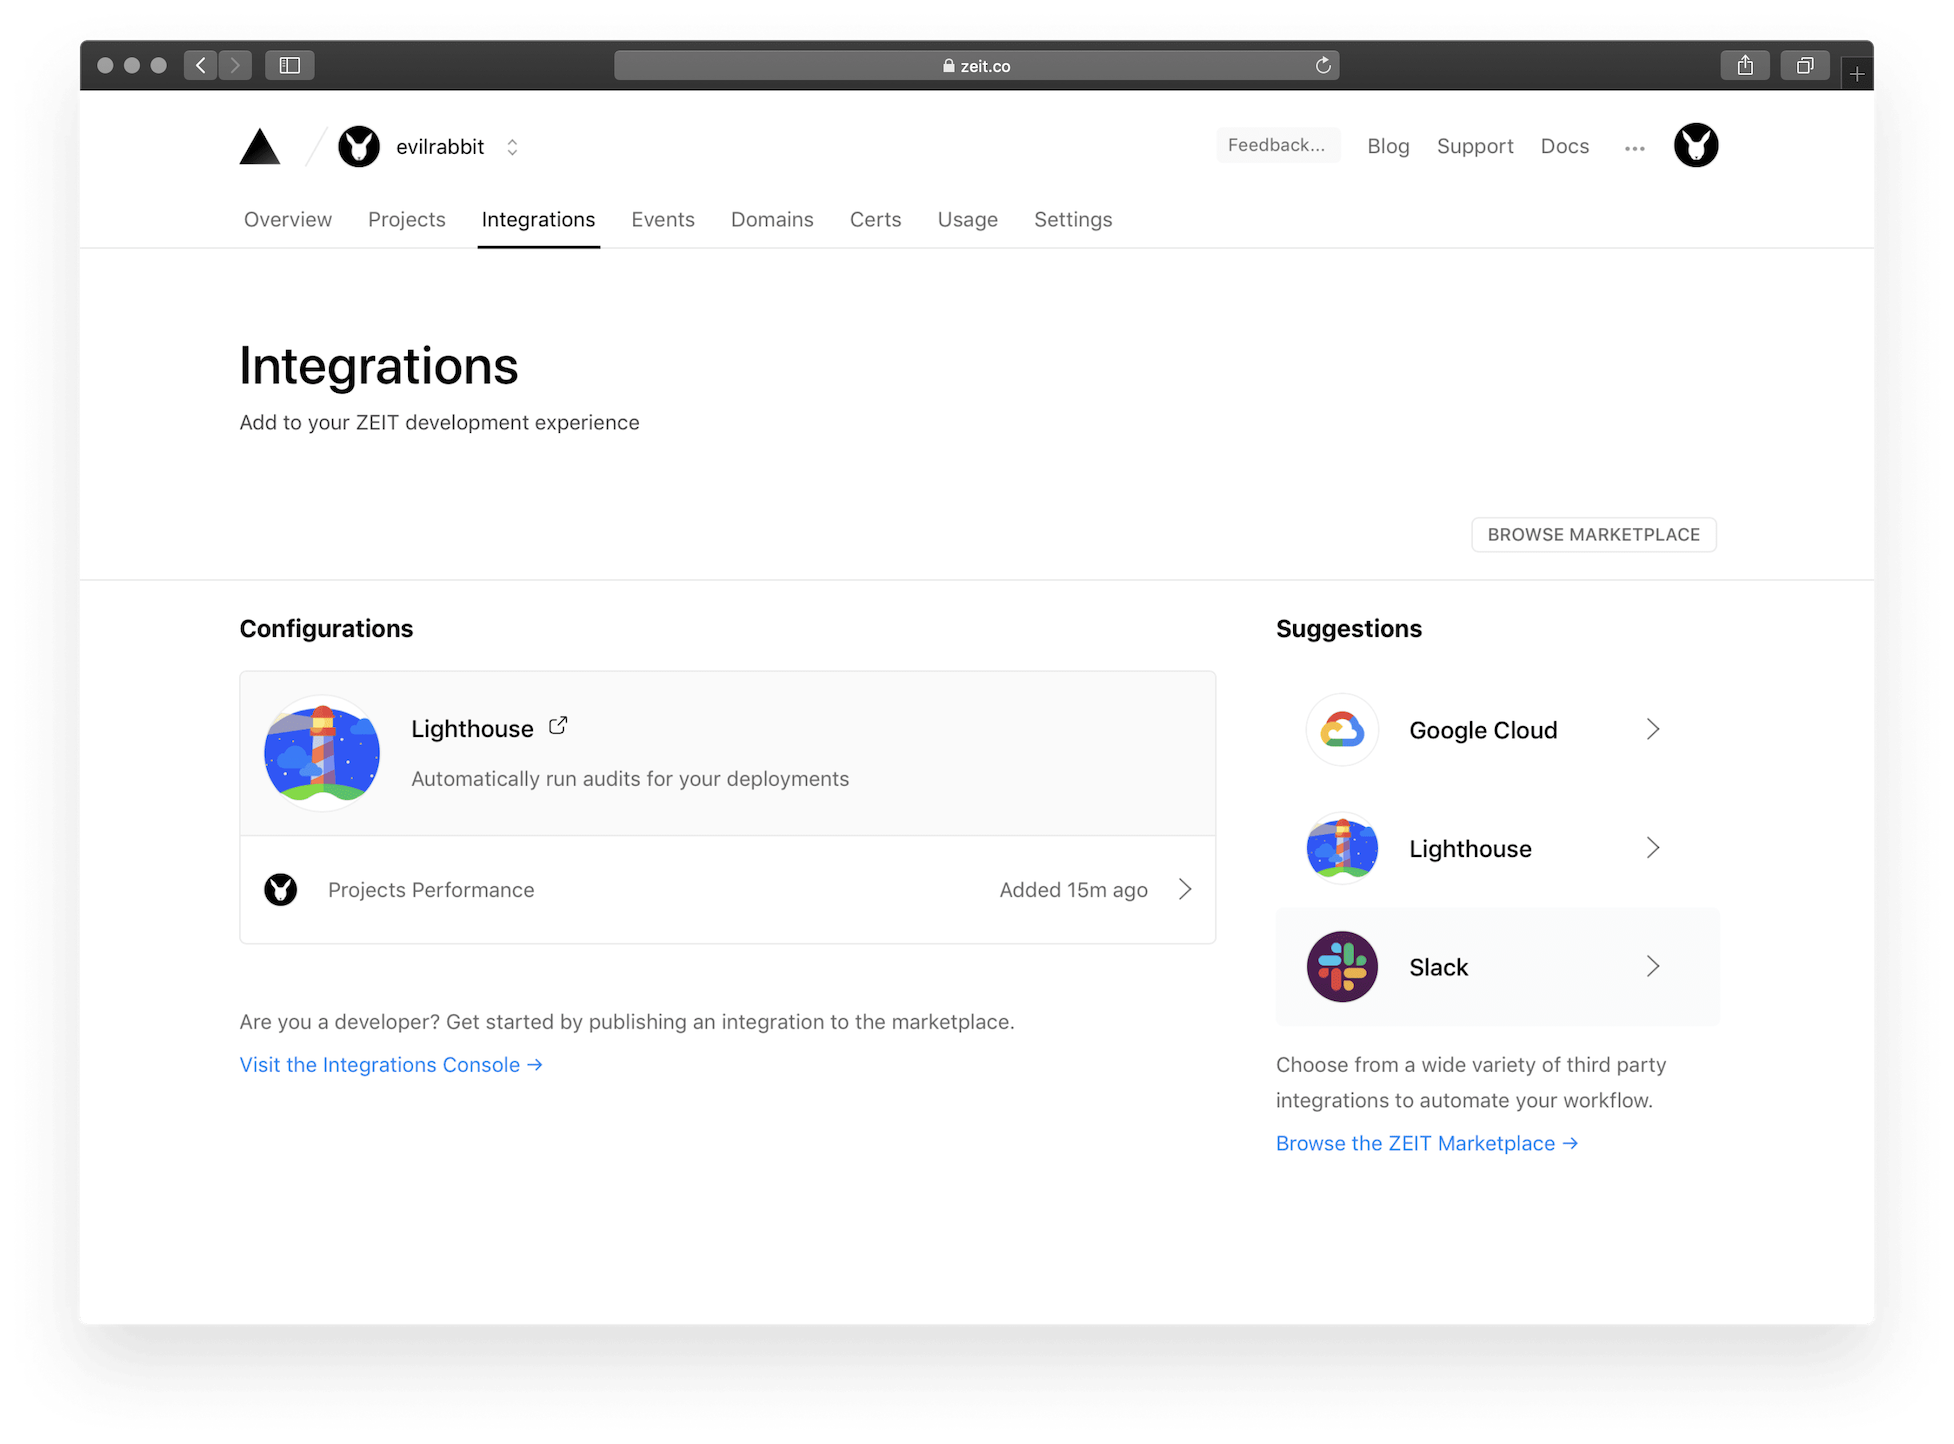 The Integrations Dashboard lists all configurations for integrations you've added.